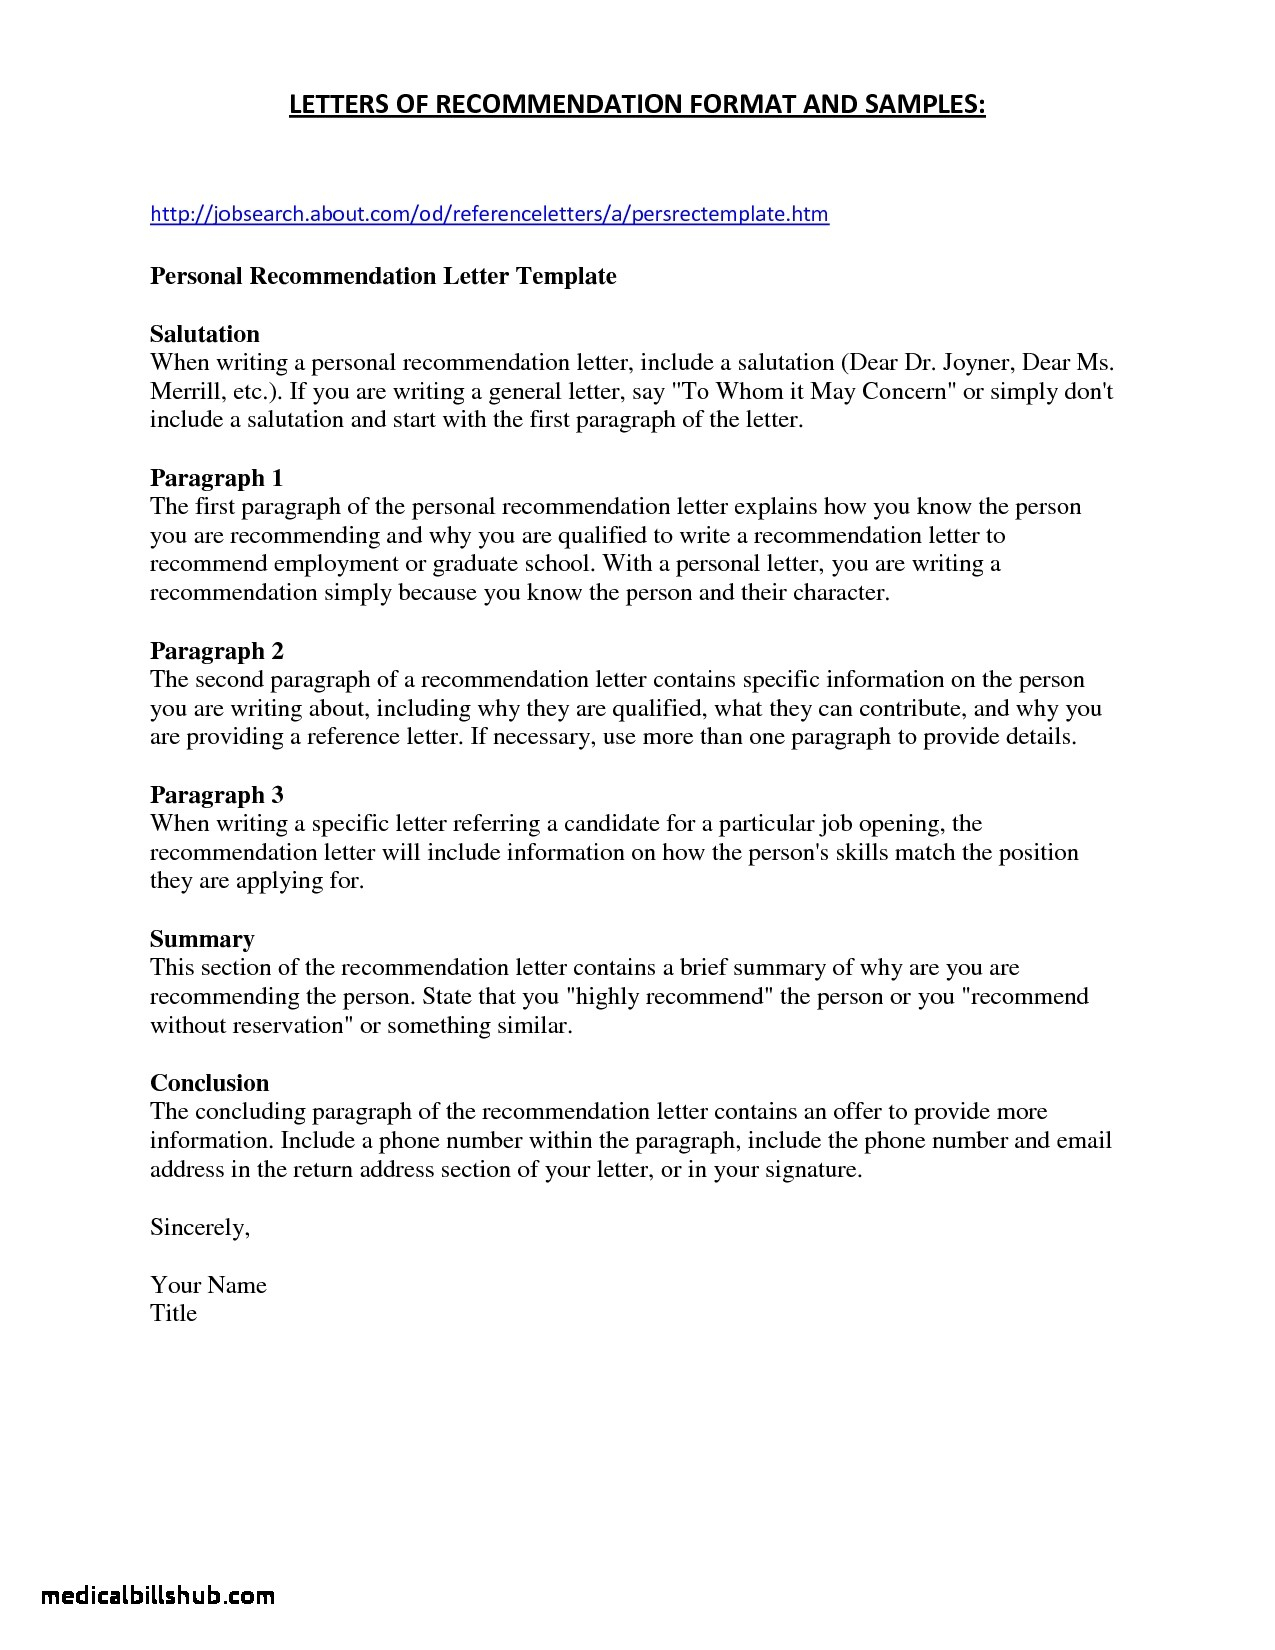 Real Estate Referral Letter Template - Sample Re Mendation Letter for Job New Letter Re Mendation for